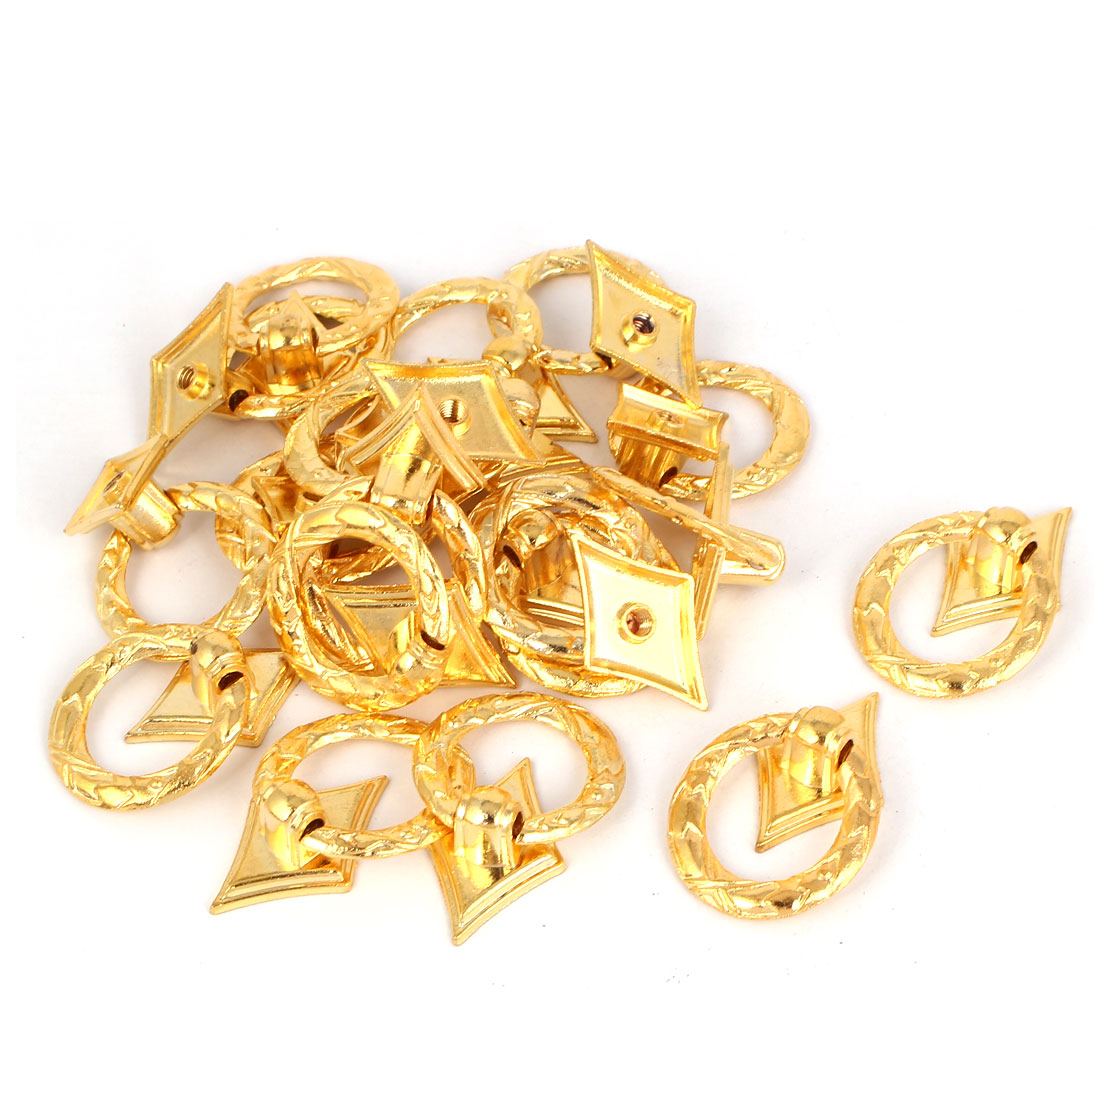 Wooden Box Cabinet Cupboard Drawer Metal Ring Pull Handle Grip Gold Tone 20pcs